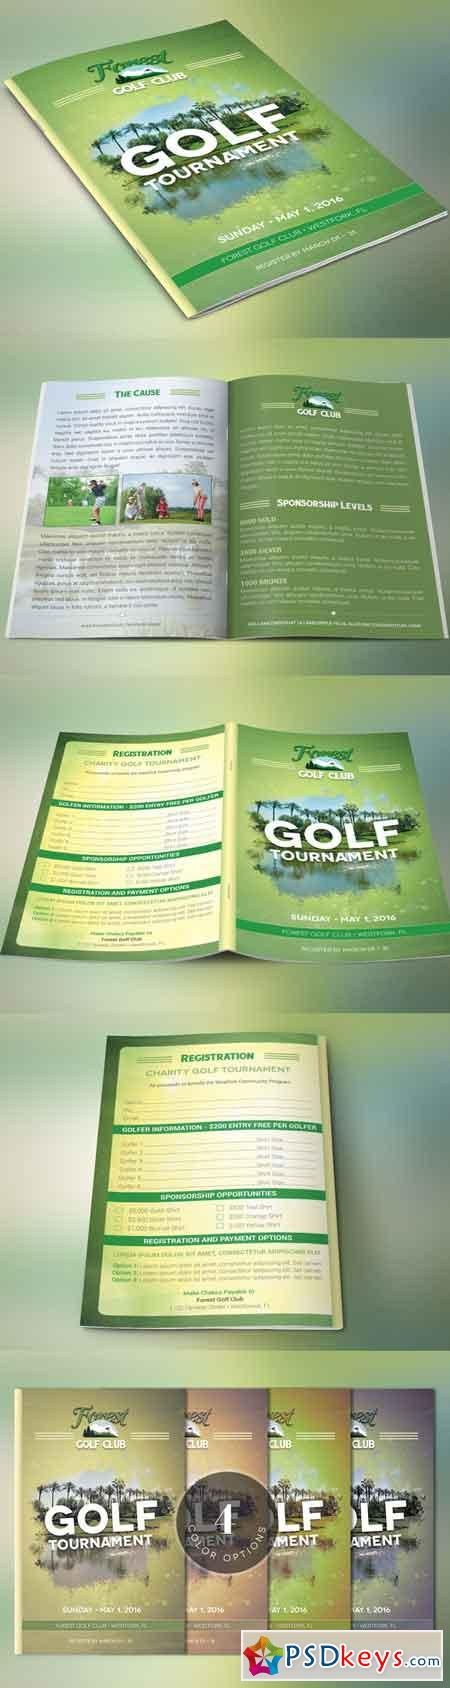 Golf brochure template 671417 free download photoshop for Golf brochure template